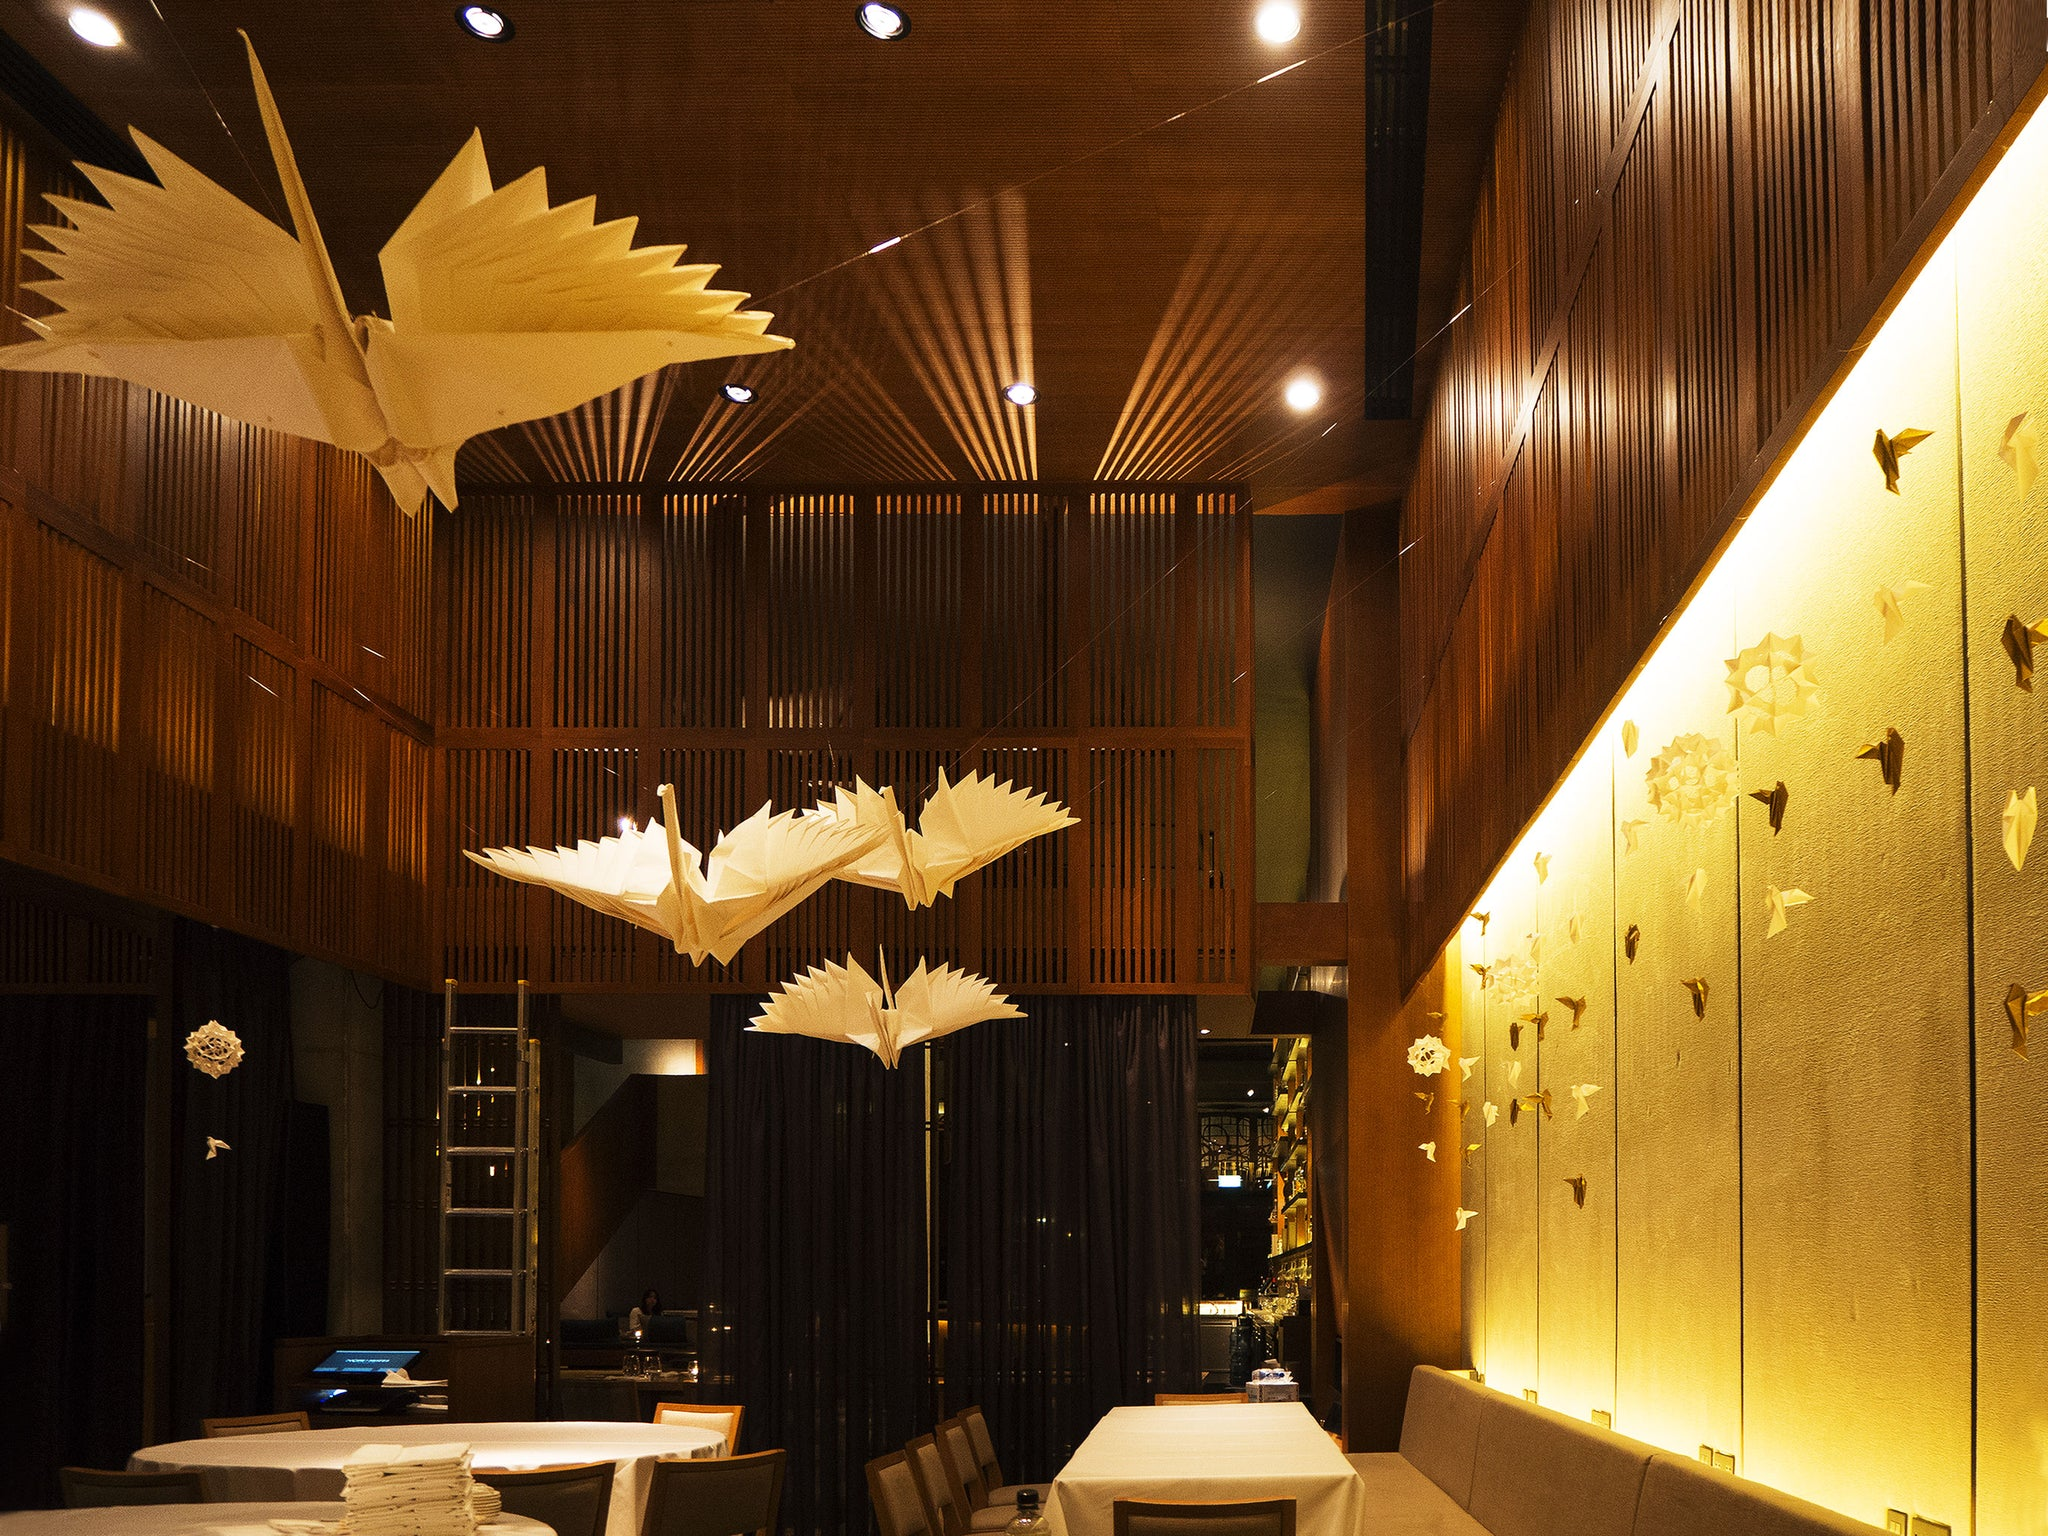 BESPOKE ORIGAMI feathered crane paper art installation